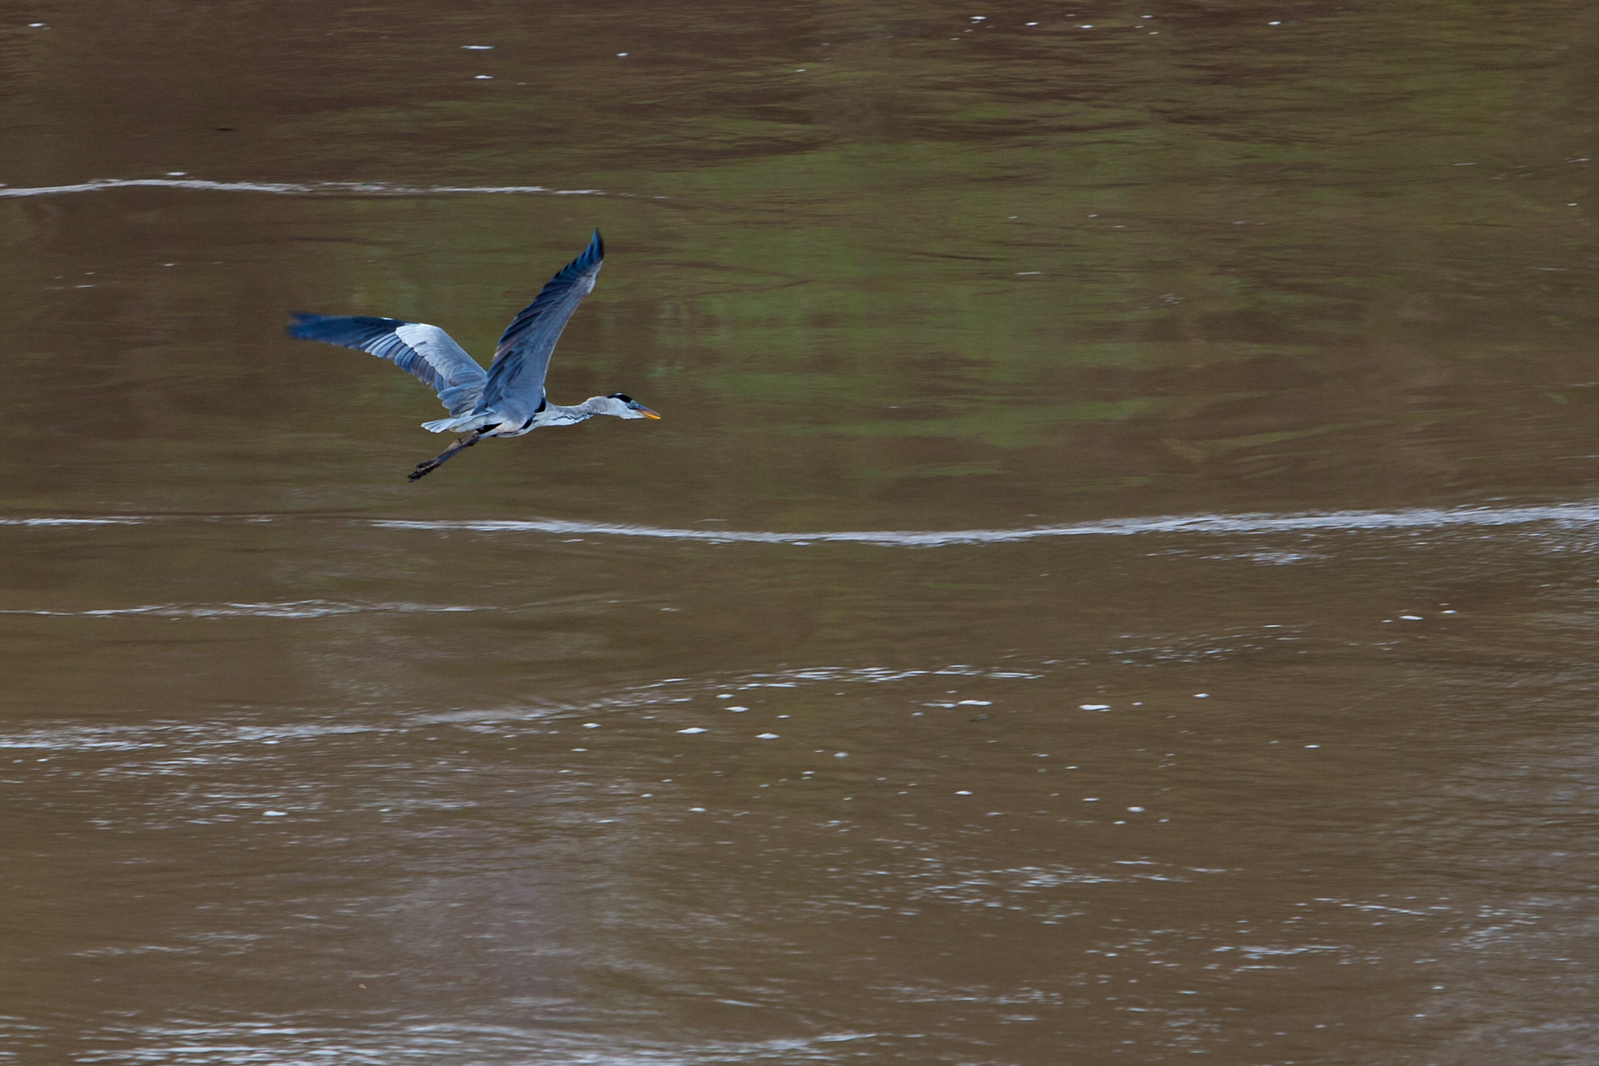 Taking flight over the Amazon River